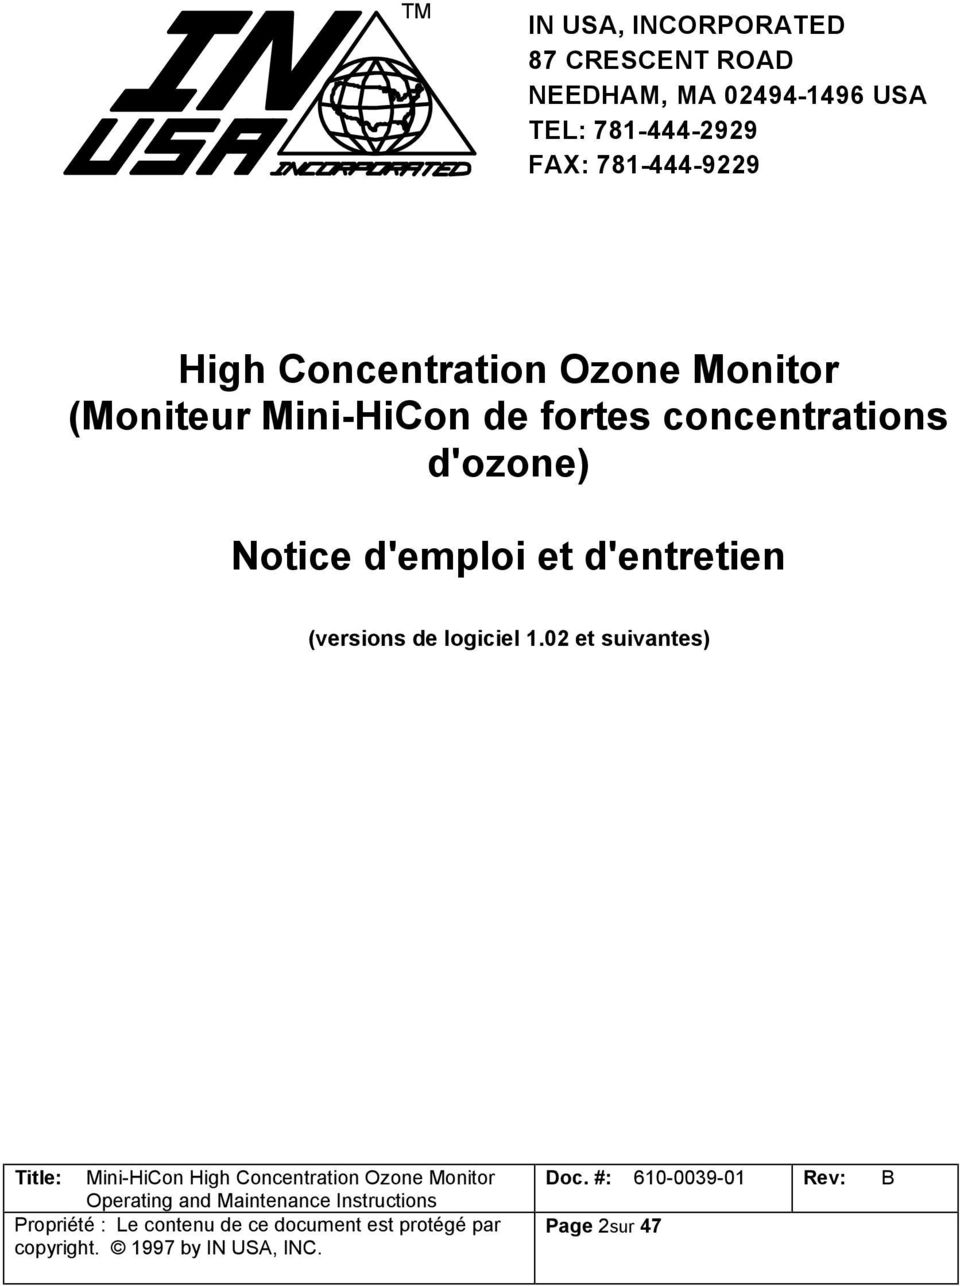 (Moniteur Mini-HiCon de fortes concentrations d'ozone) Notice